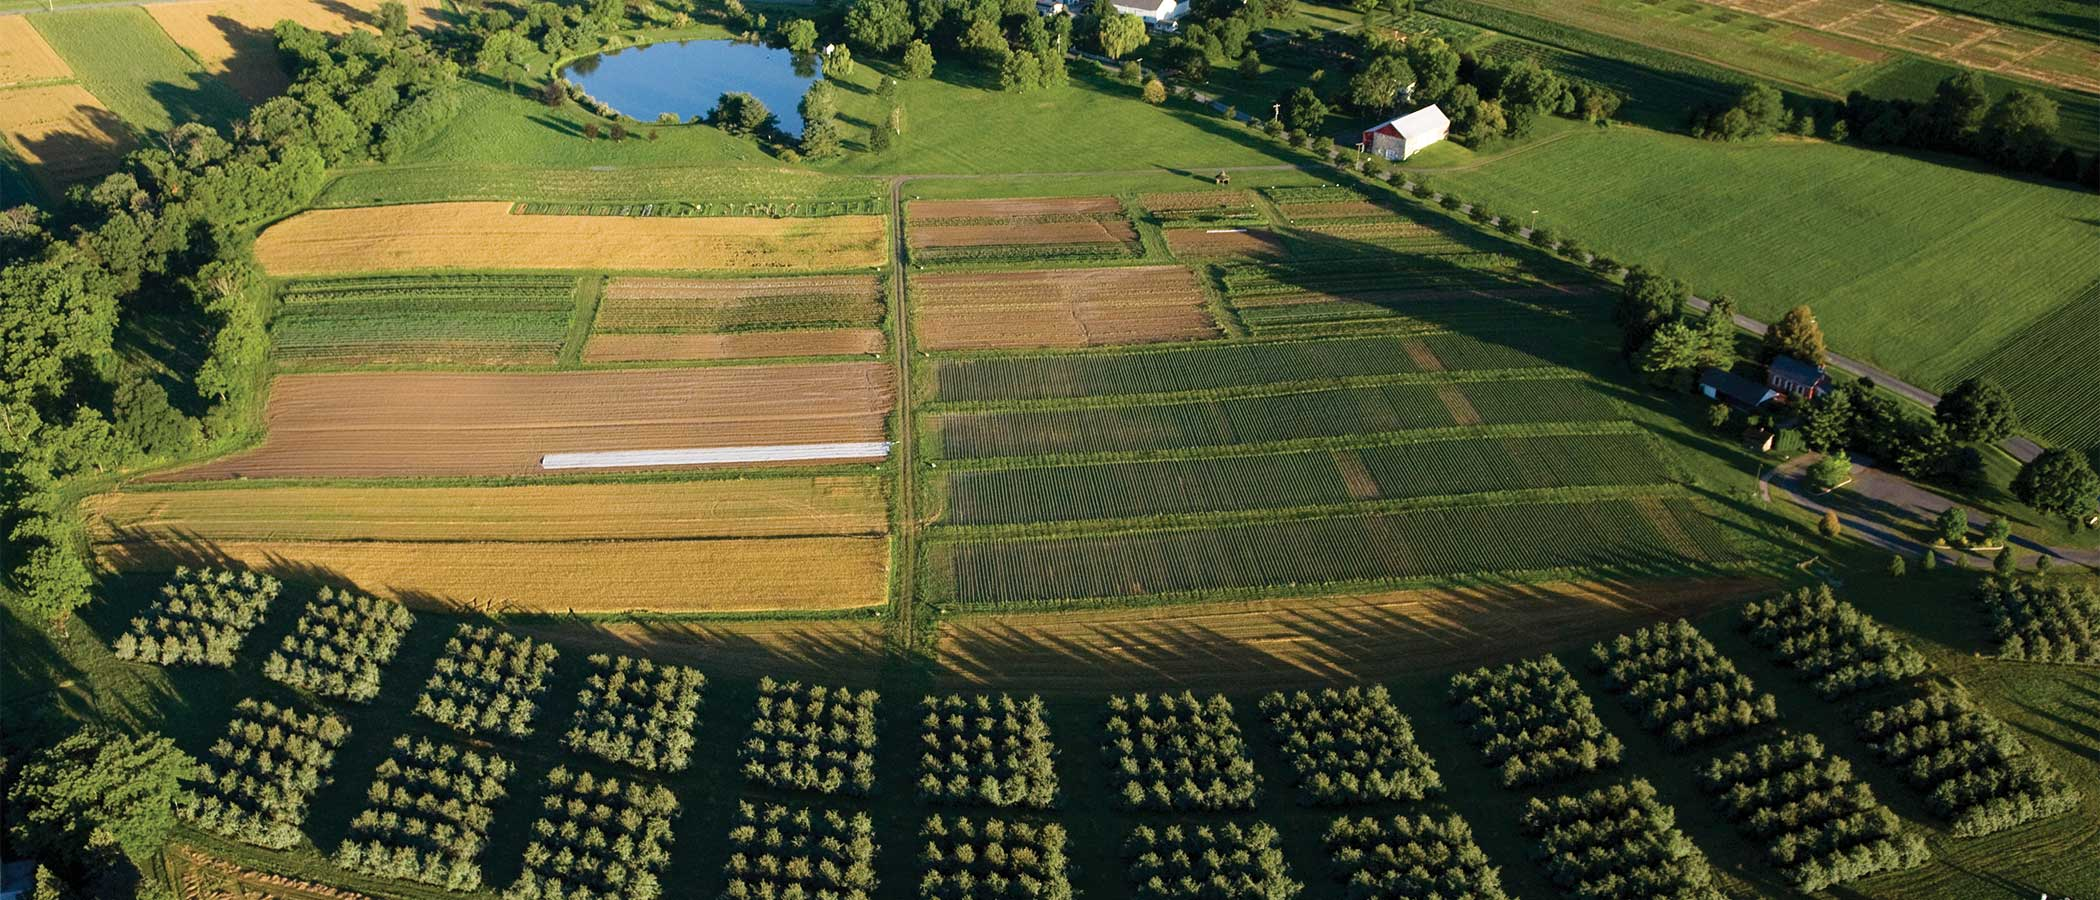 Aerial view of a farm practicing regenerative agriculture